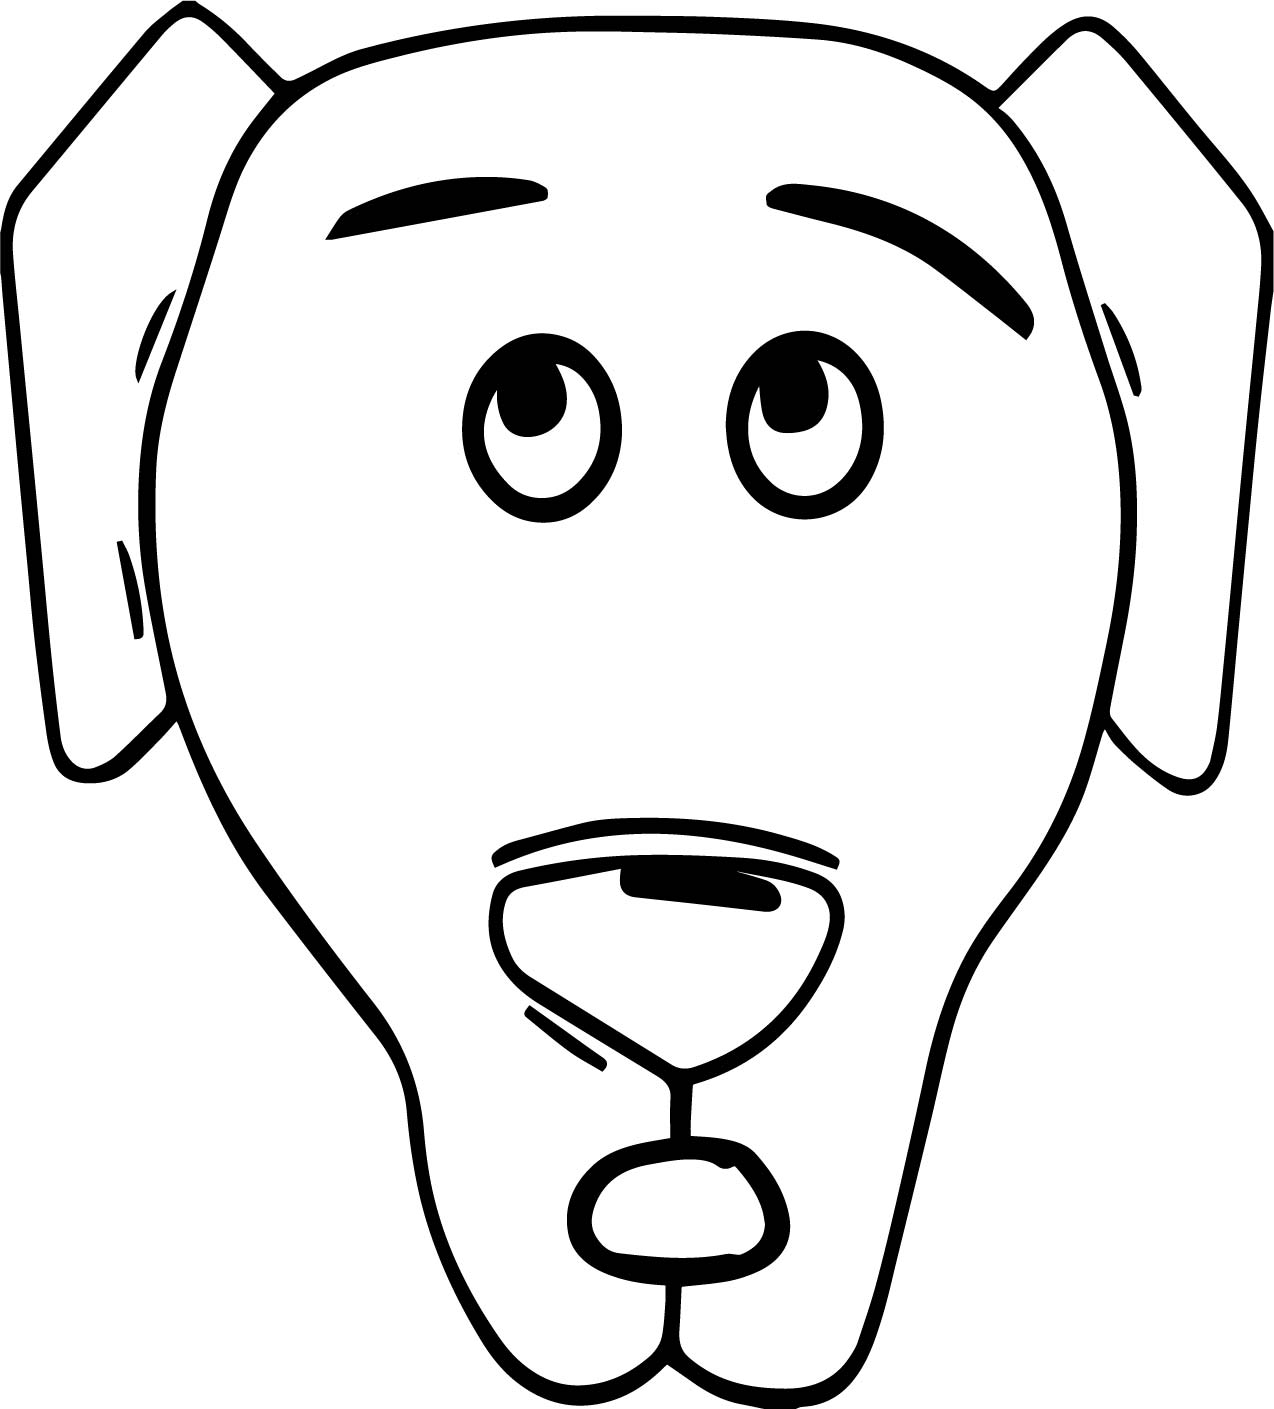 A dog face coloring page for Dog face coloring page